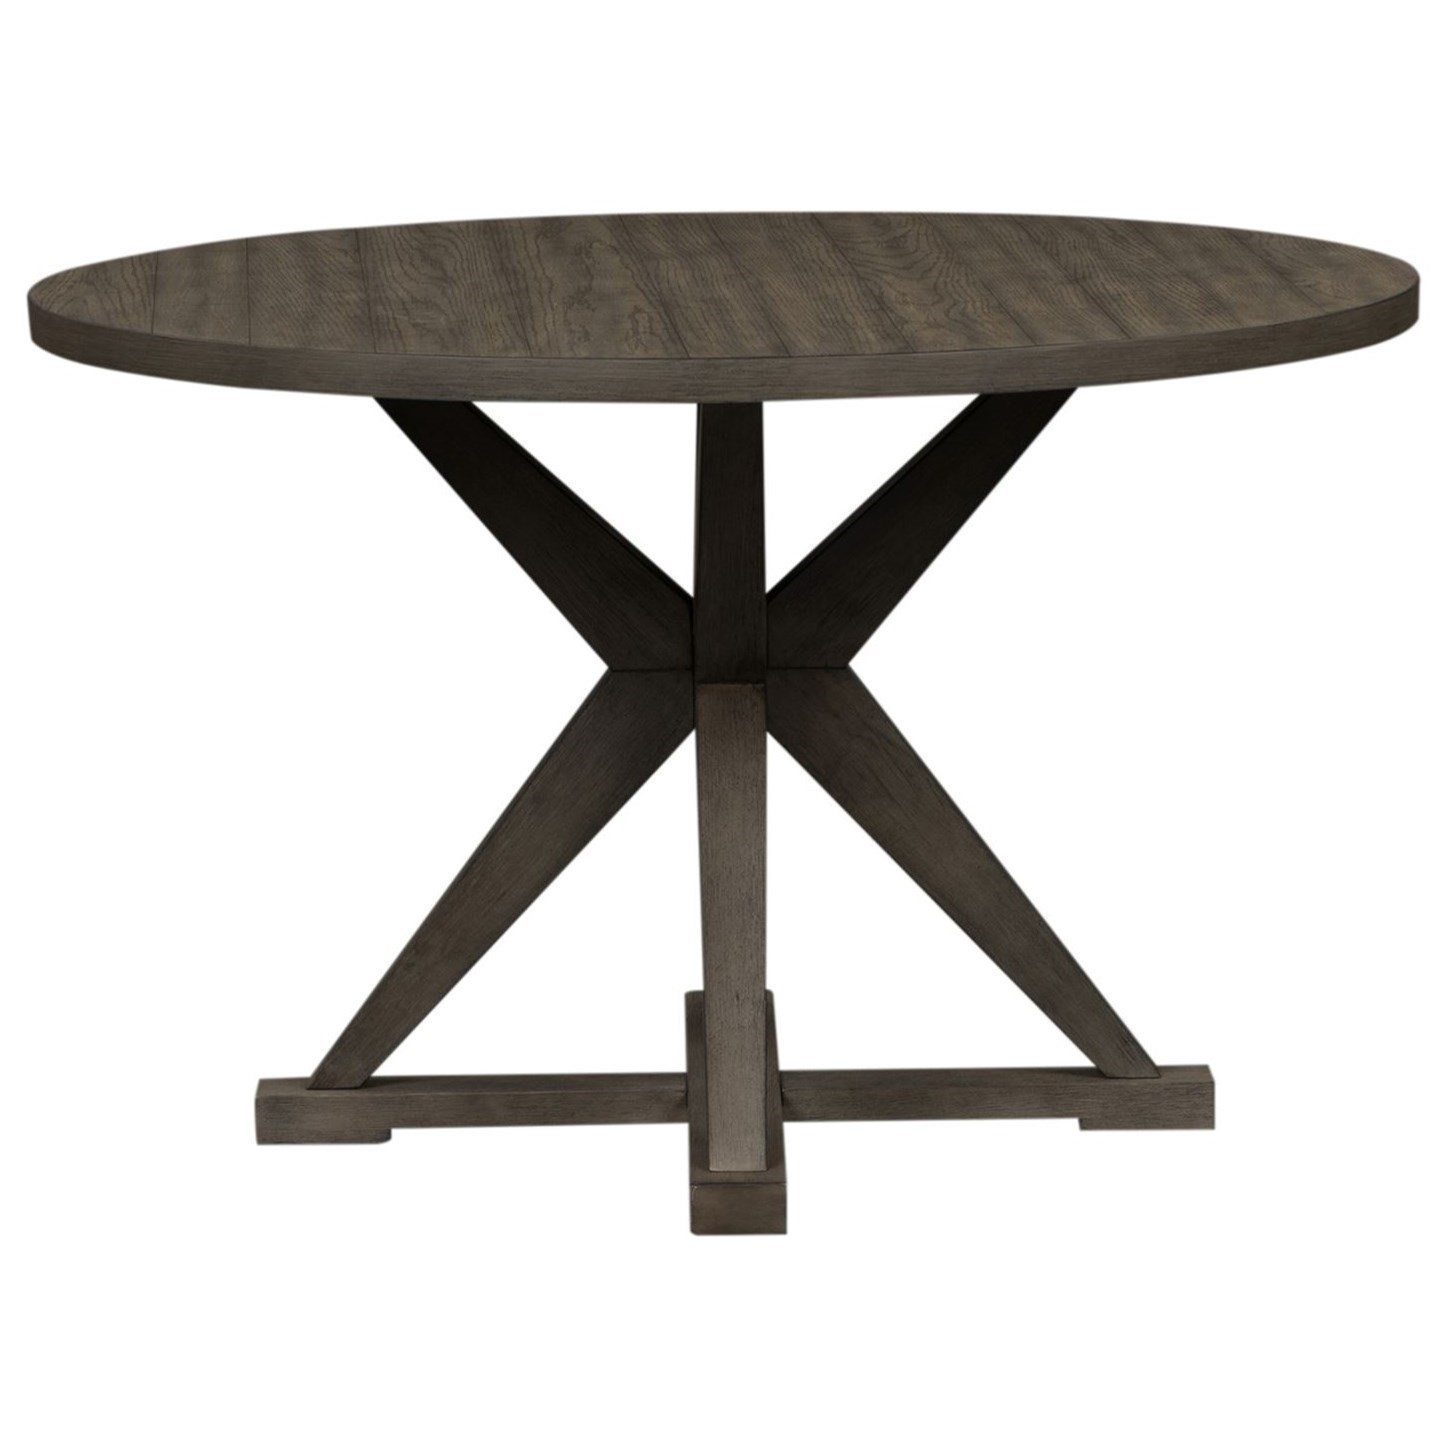 Crescent Creek Round Pedestal Table by Libby at Walker's Furniture